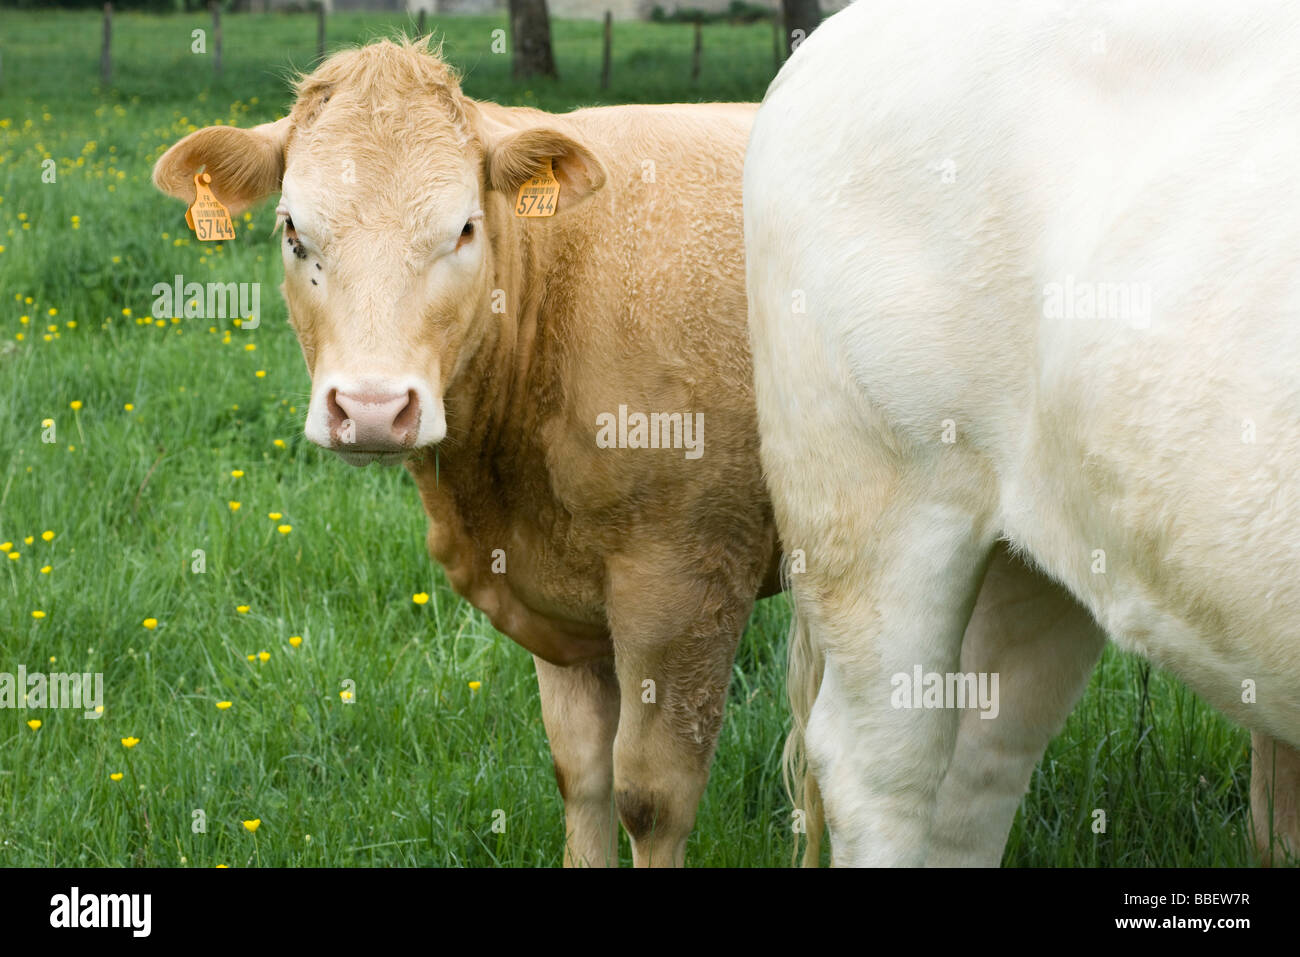 Brown cow in pasture with white cow, looking at camera - Stock Image